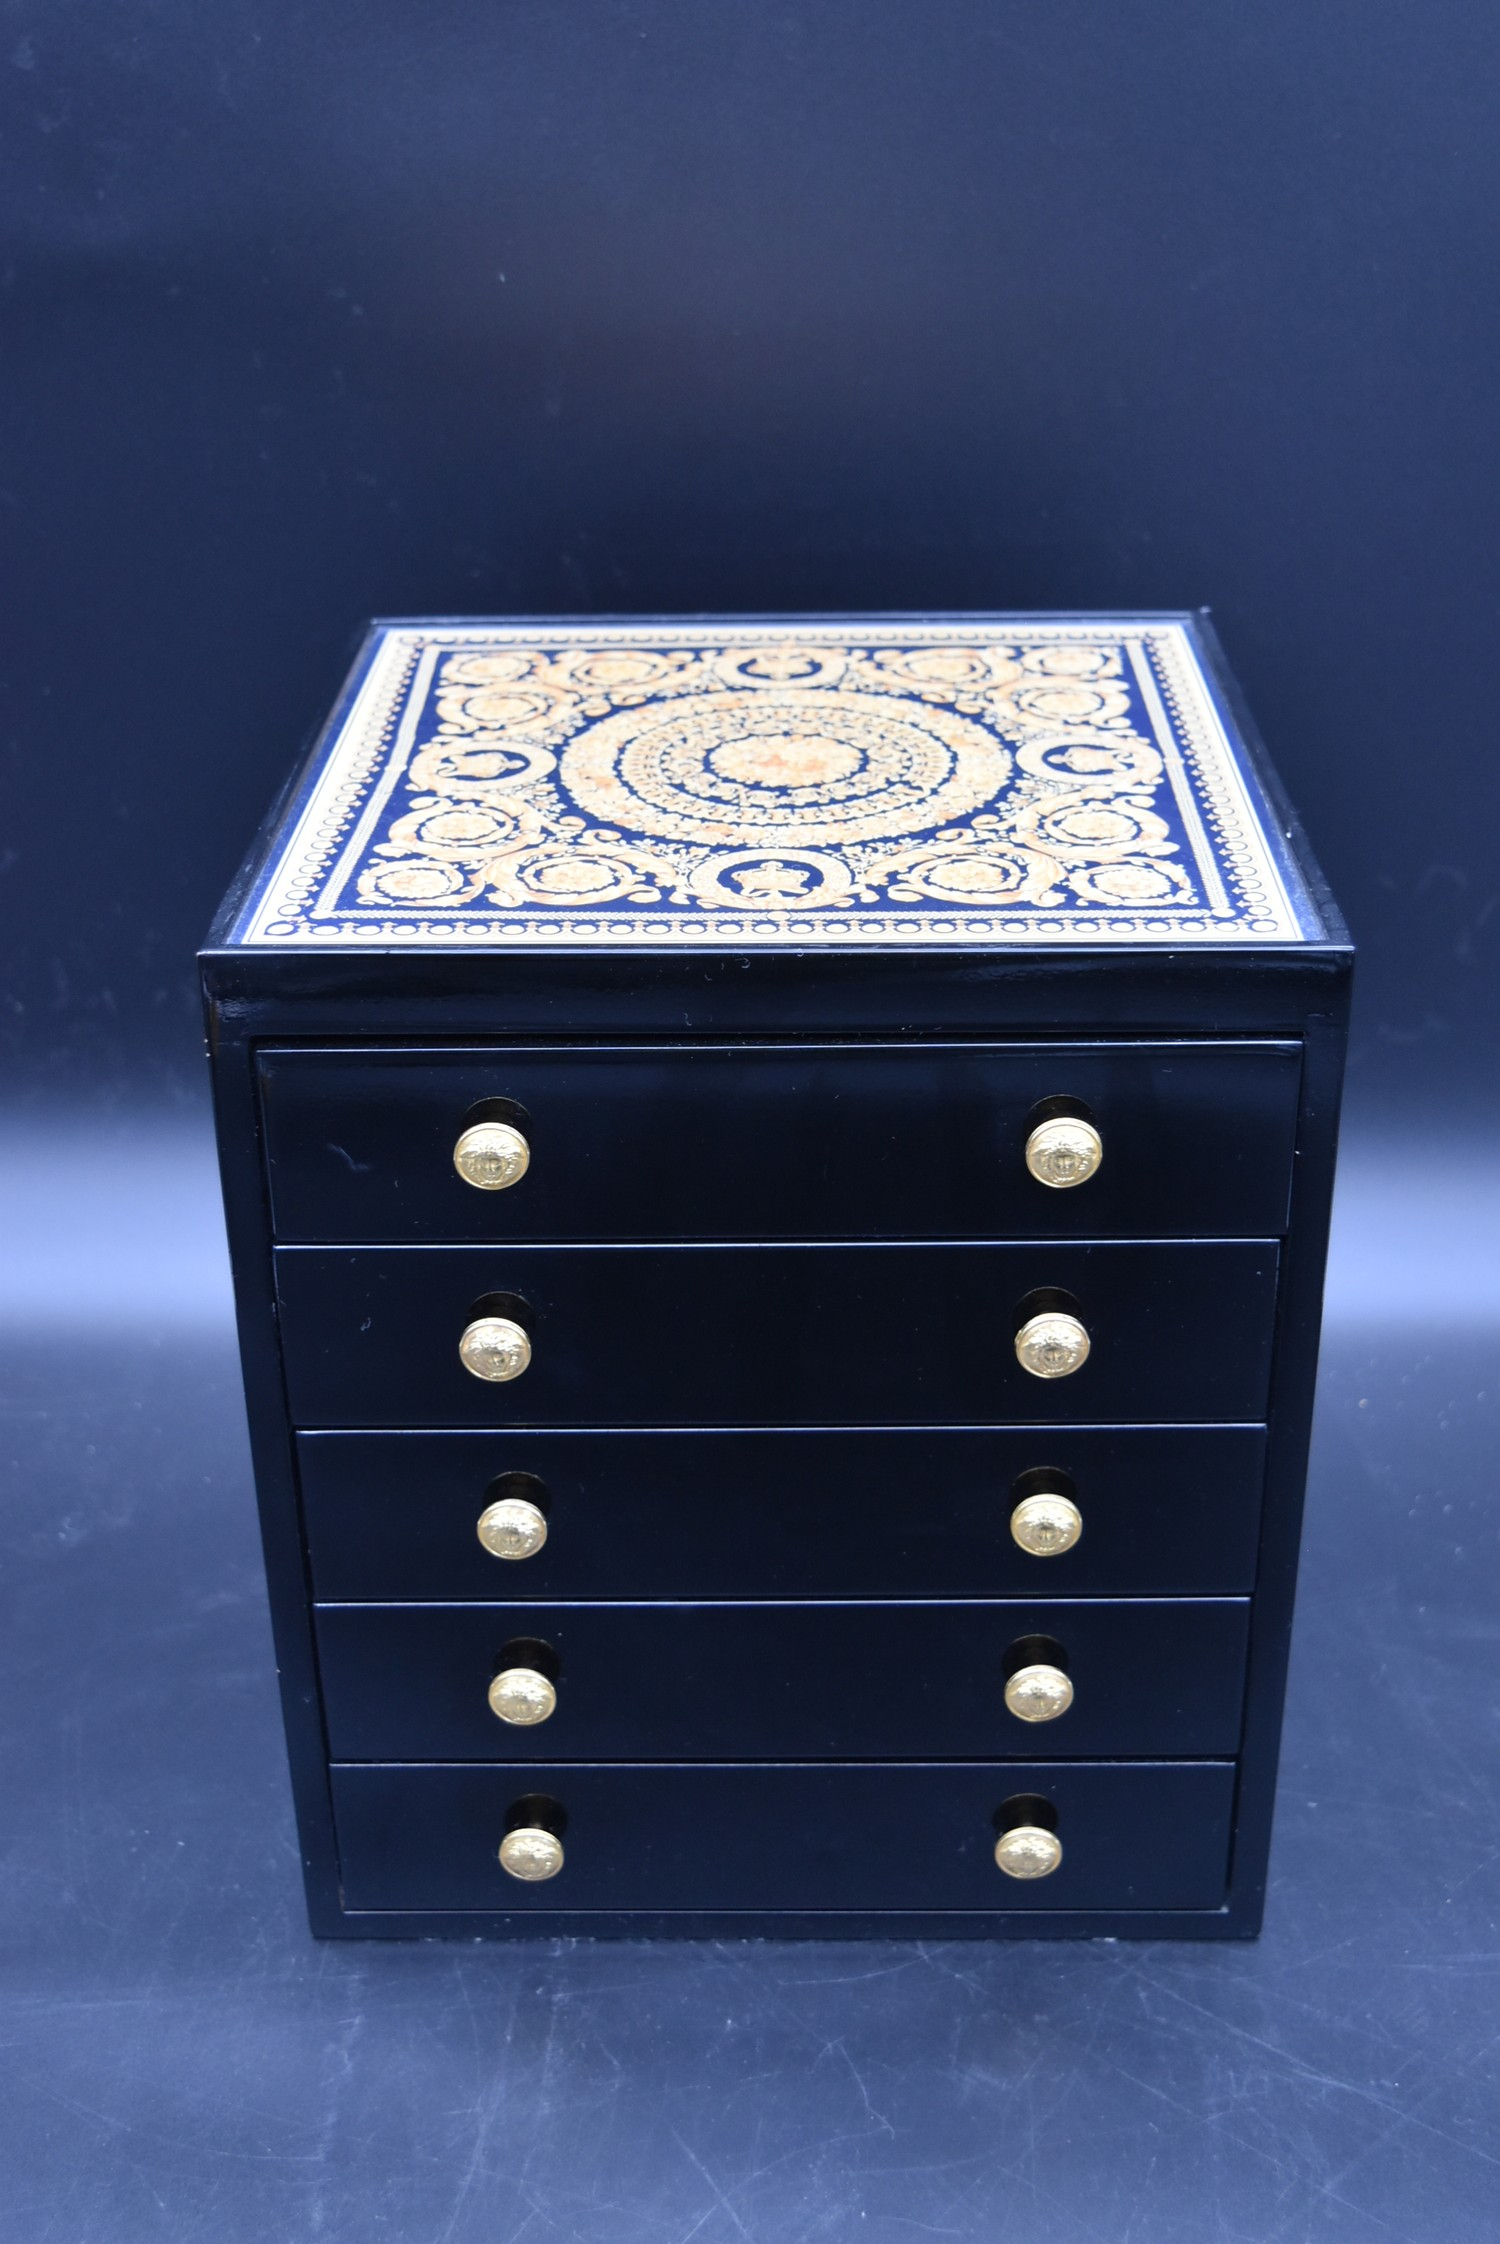 A lacquered Gianni Versace tray along with a similar jewellery chest and a lidded trinket box. H. - Image 8 of 18